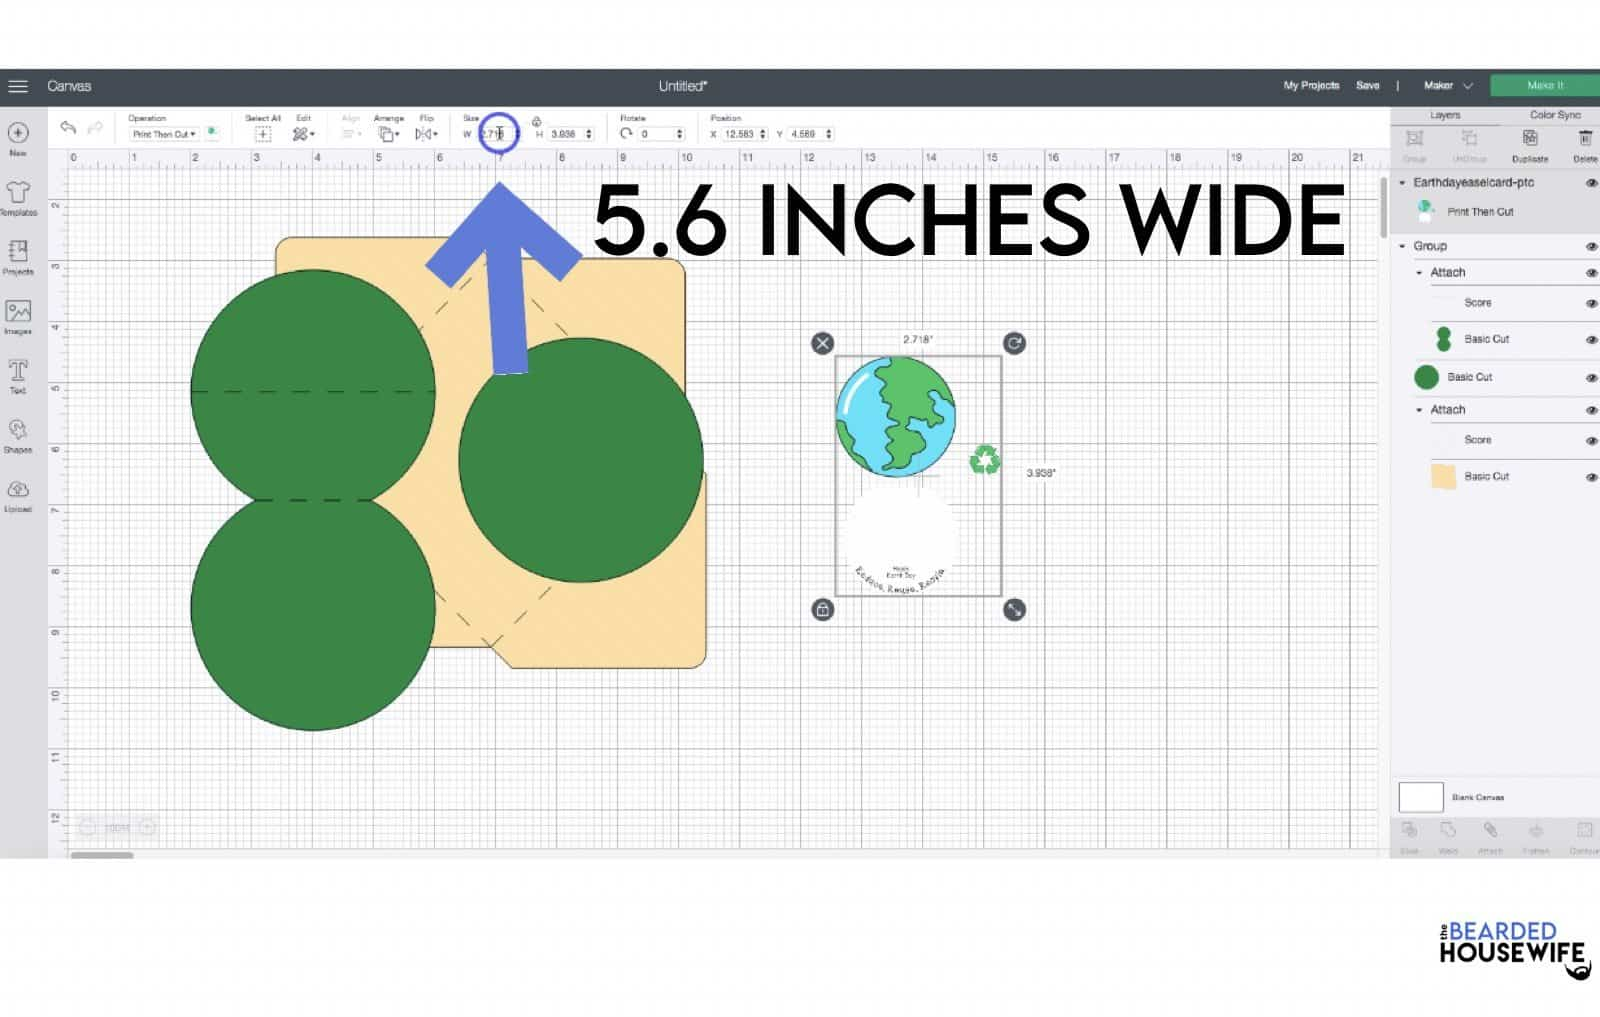 change the dimensions to 5.6 inches wide